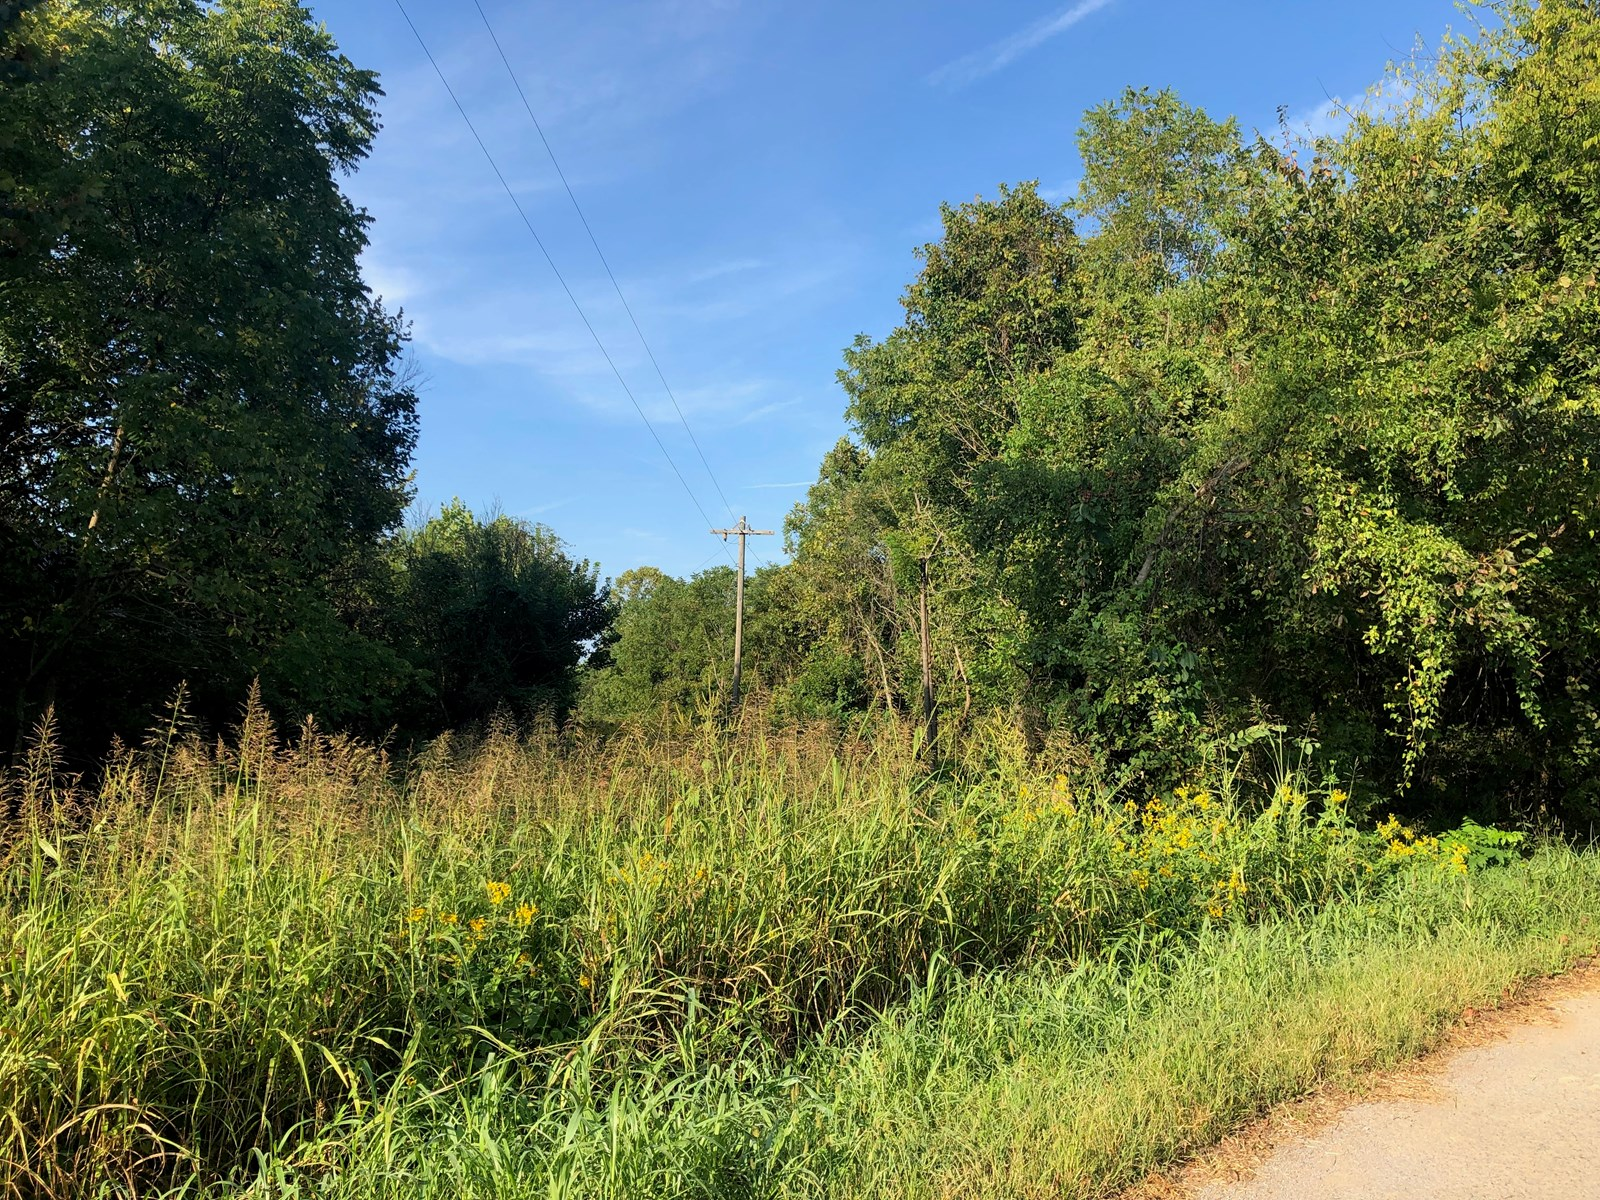 3.35 Acres of Unrestricted Land in East TN For Sale